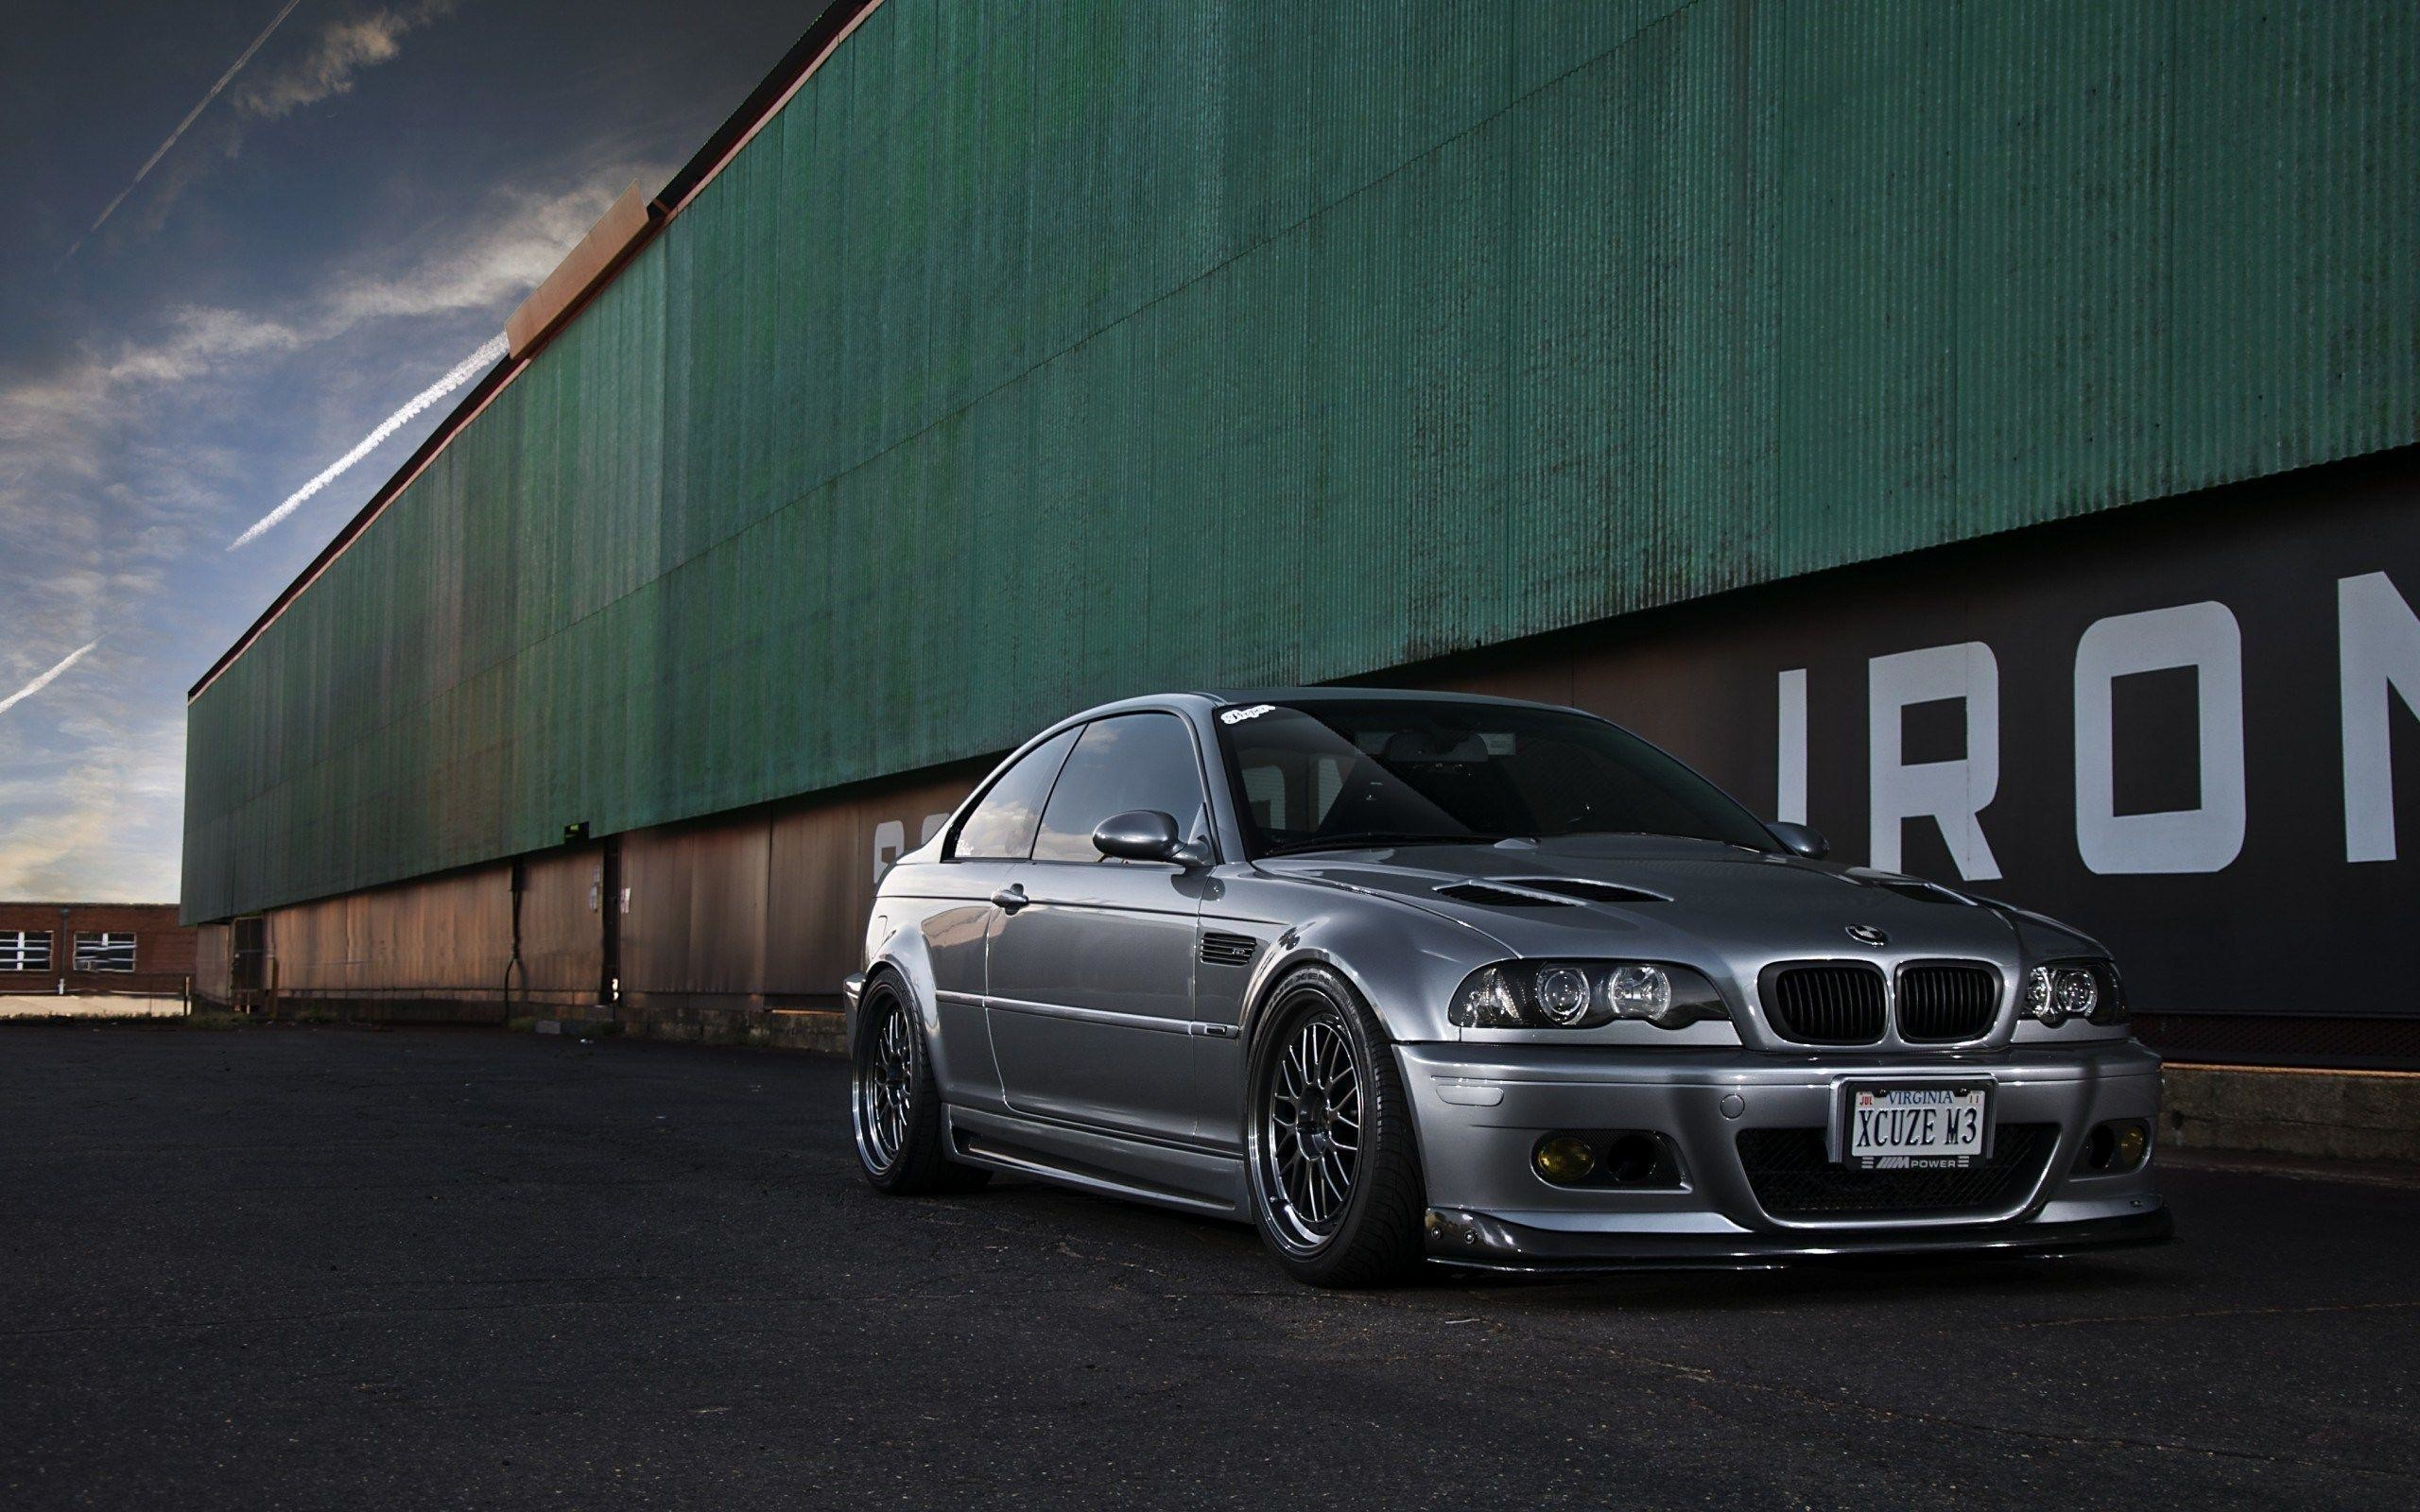 2560x1600 Silver BMW M3 E46 Buildings Warehouse HD Wallpaper - ZoomWalls